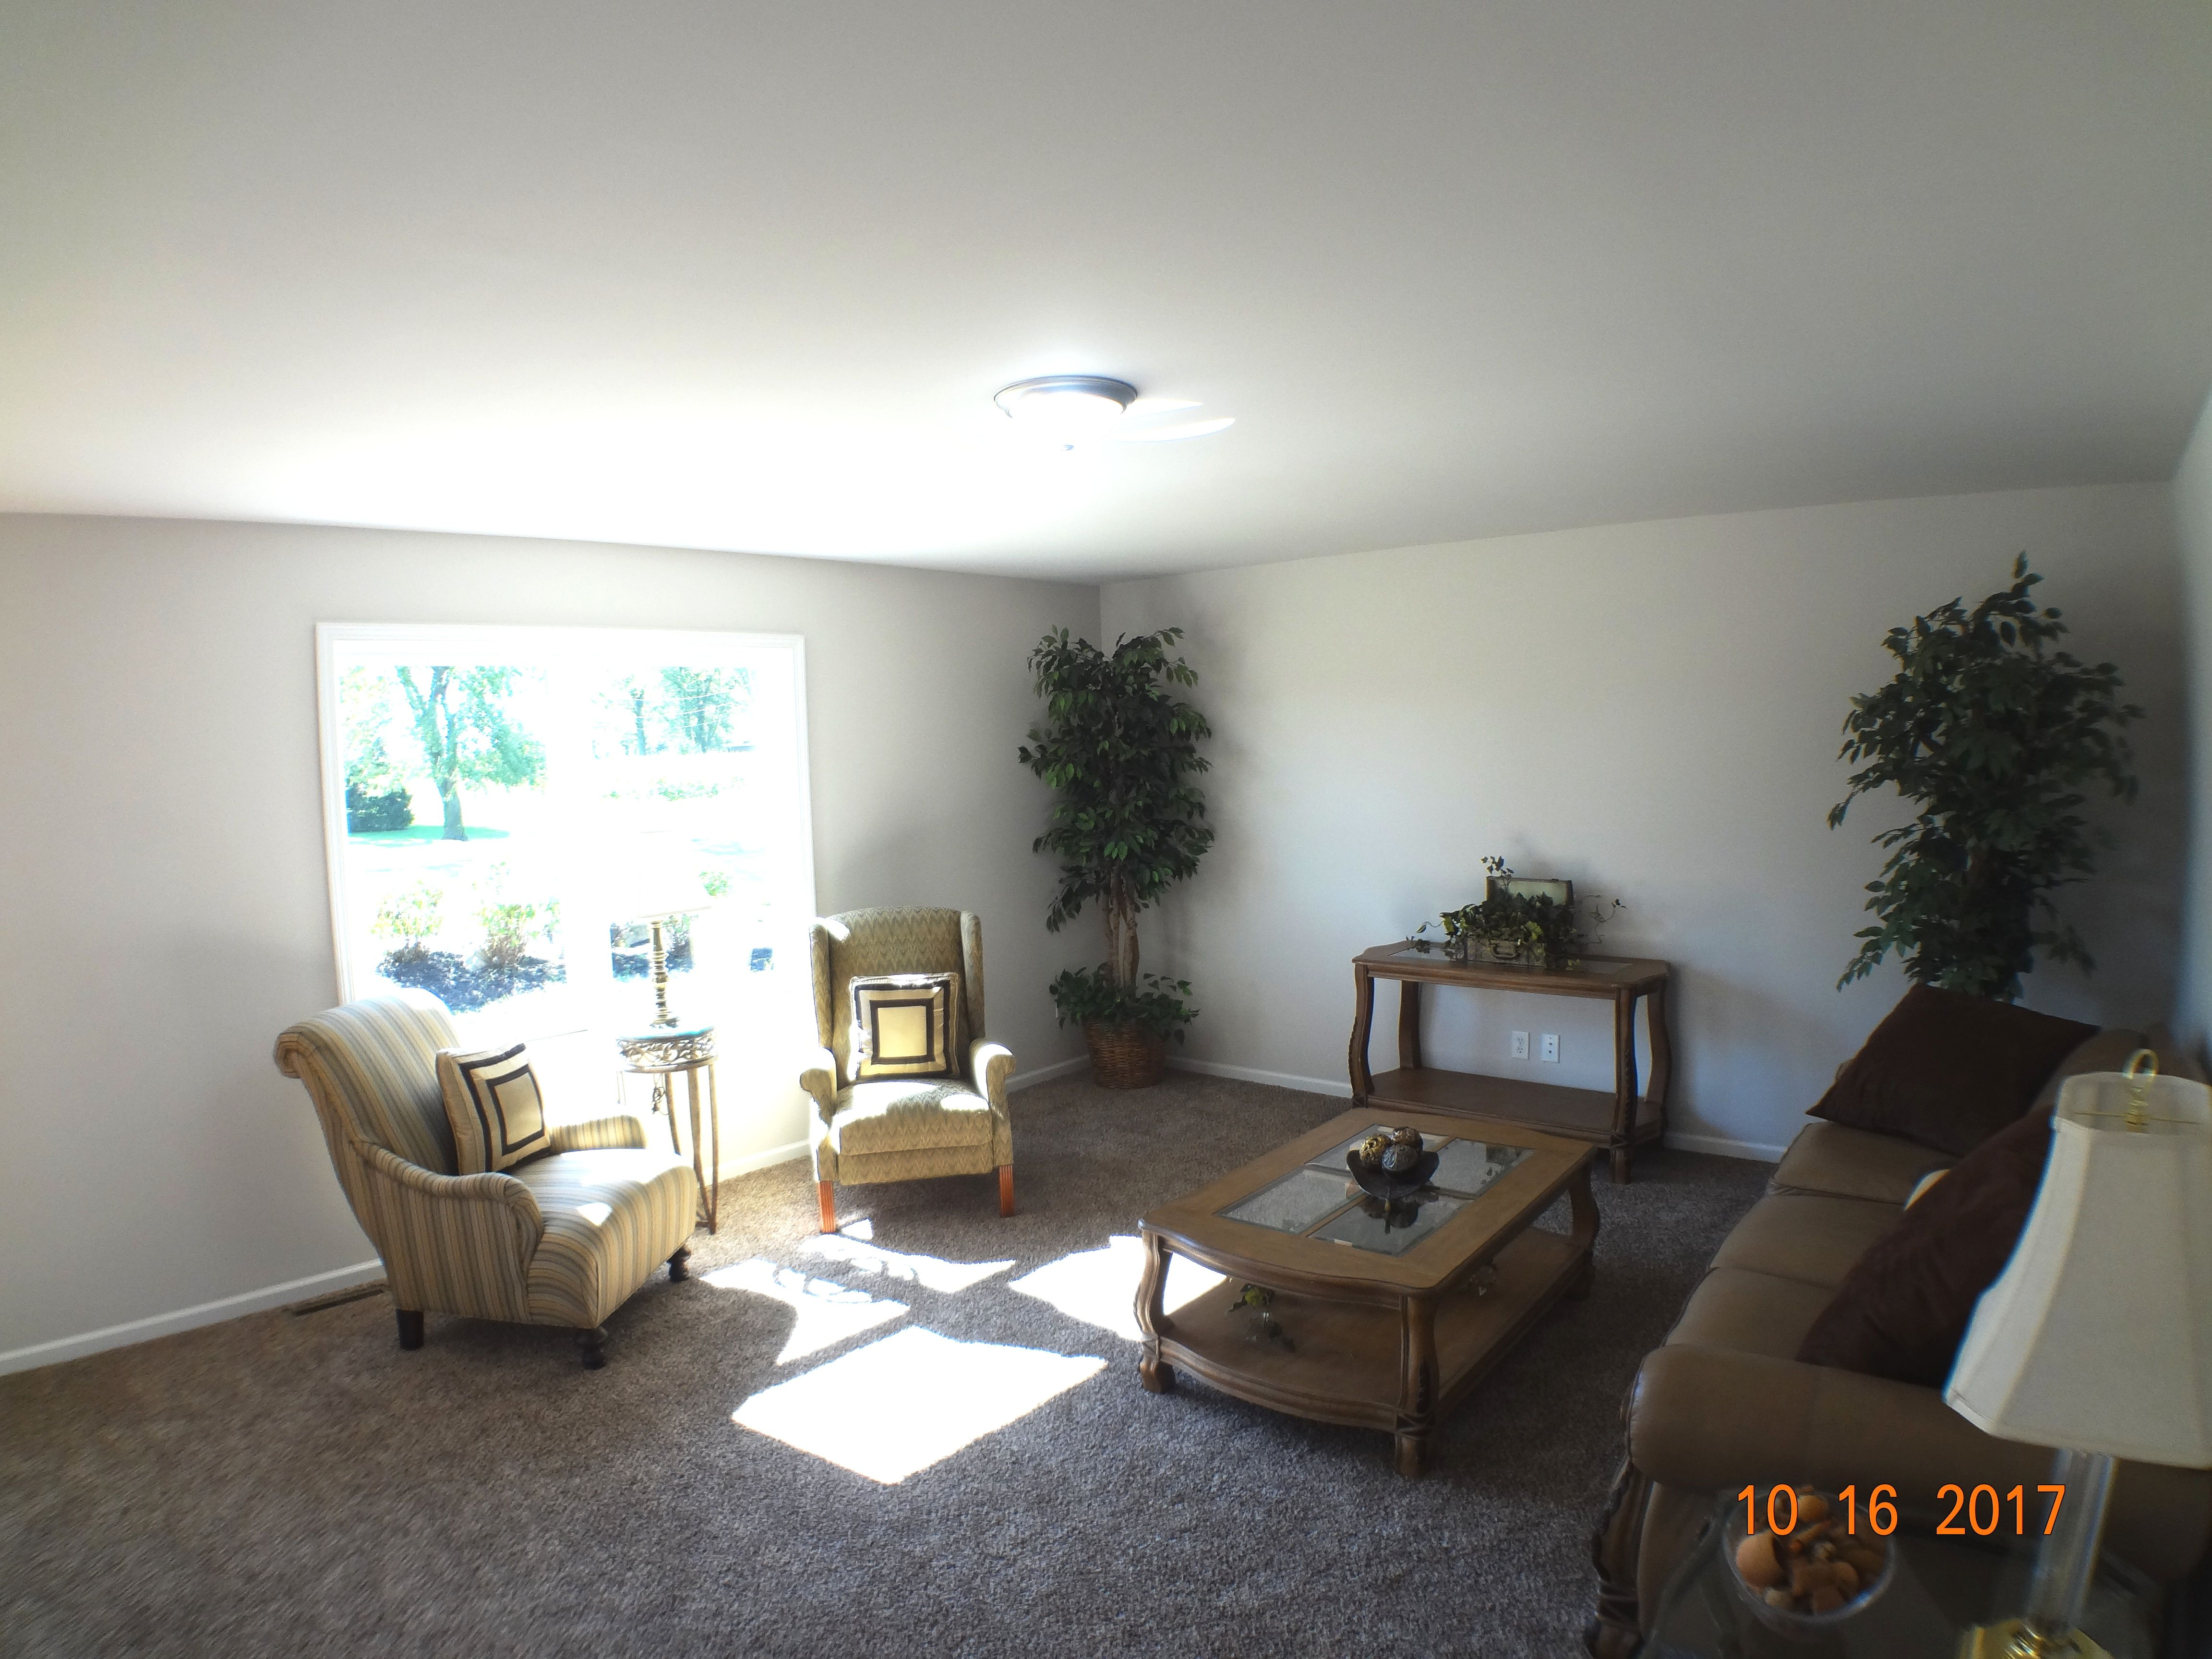 Living Area featured in the Smithport By Accent Homes Inc. in Gary, IN